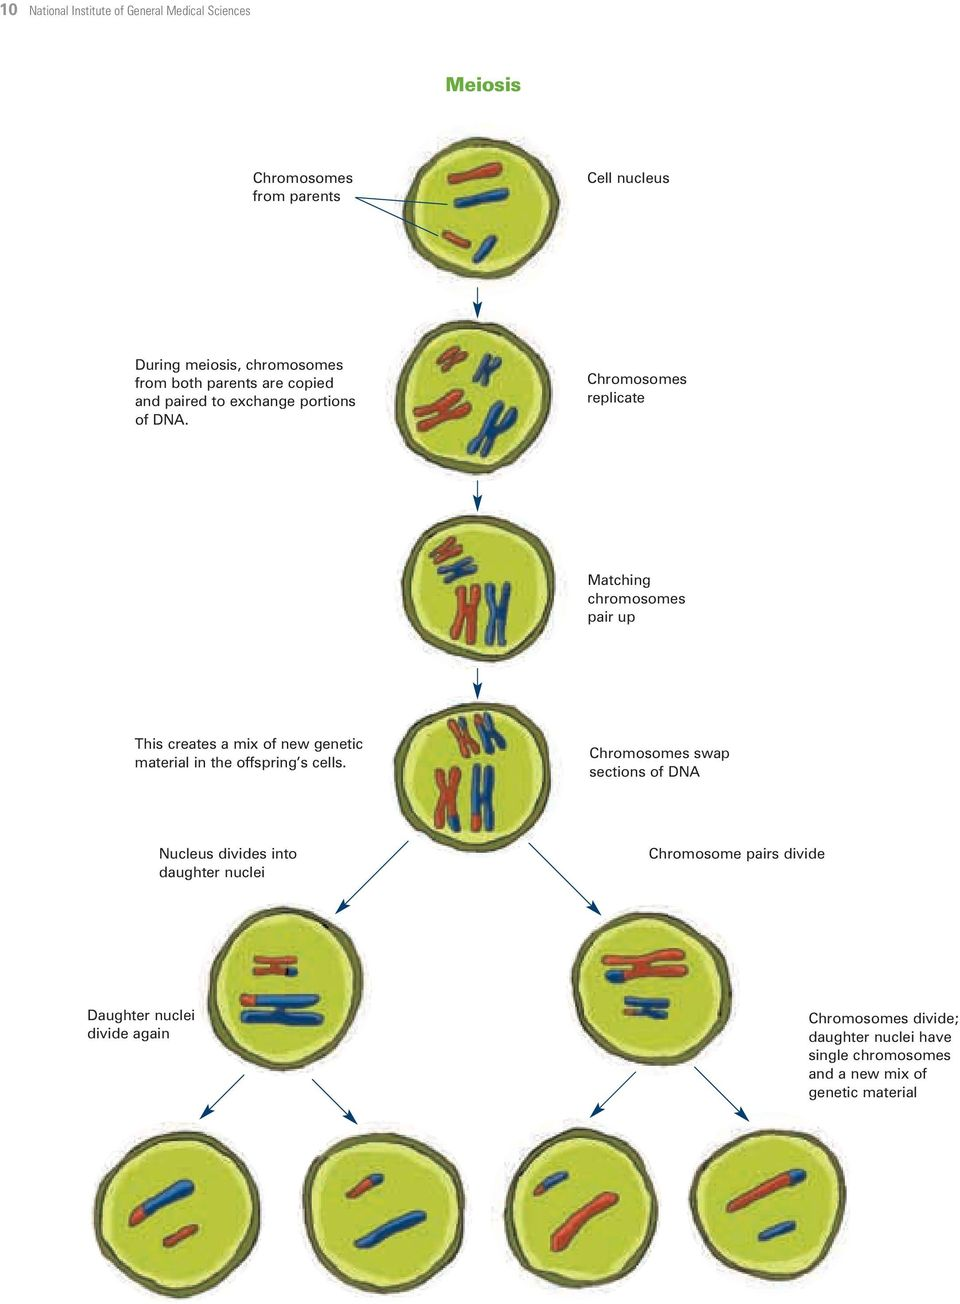 Chromosomes replicate Matching chromosomes pair up This creates a mix of new genetic material in the offspring s cells.